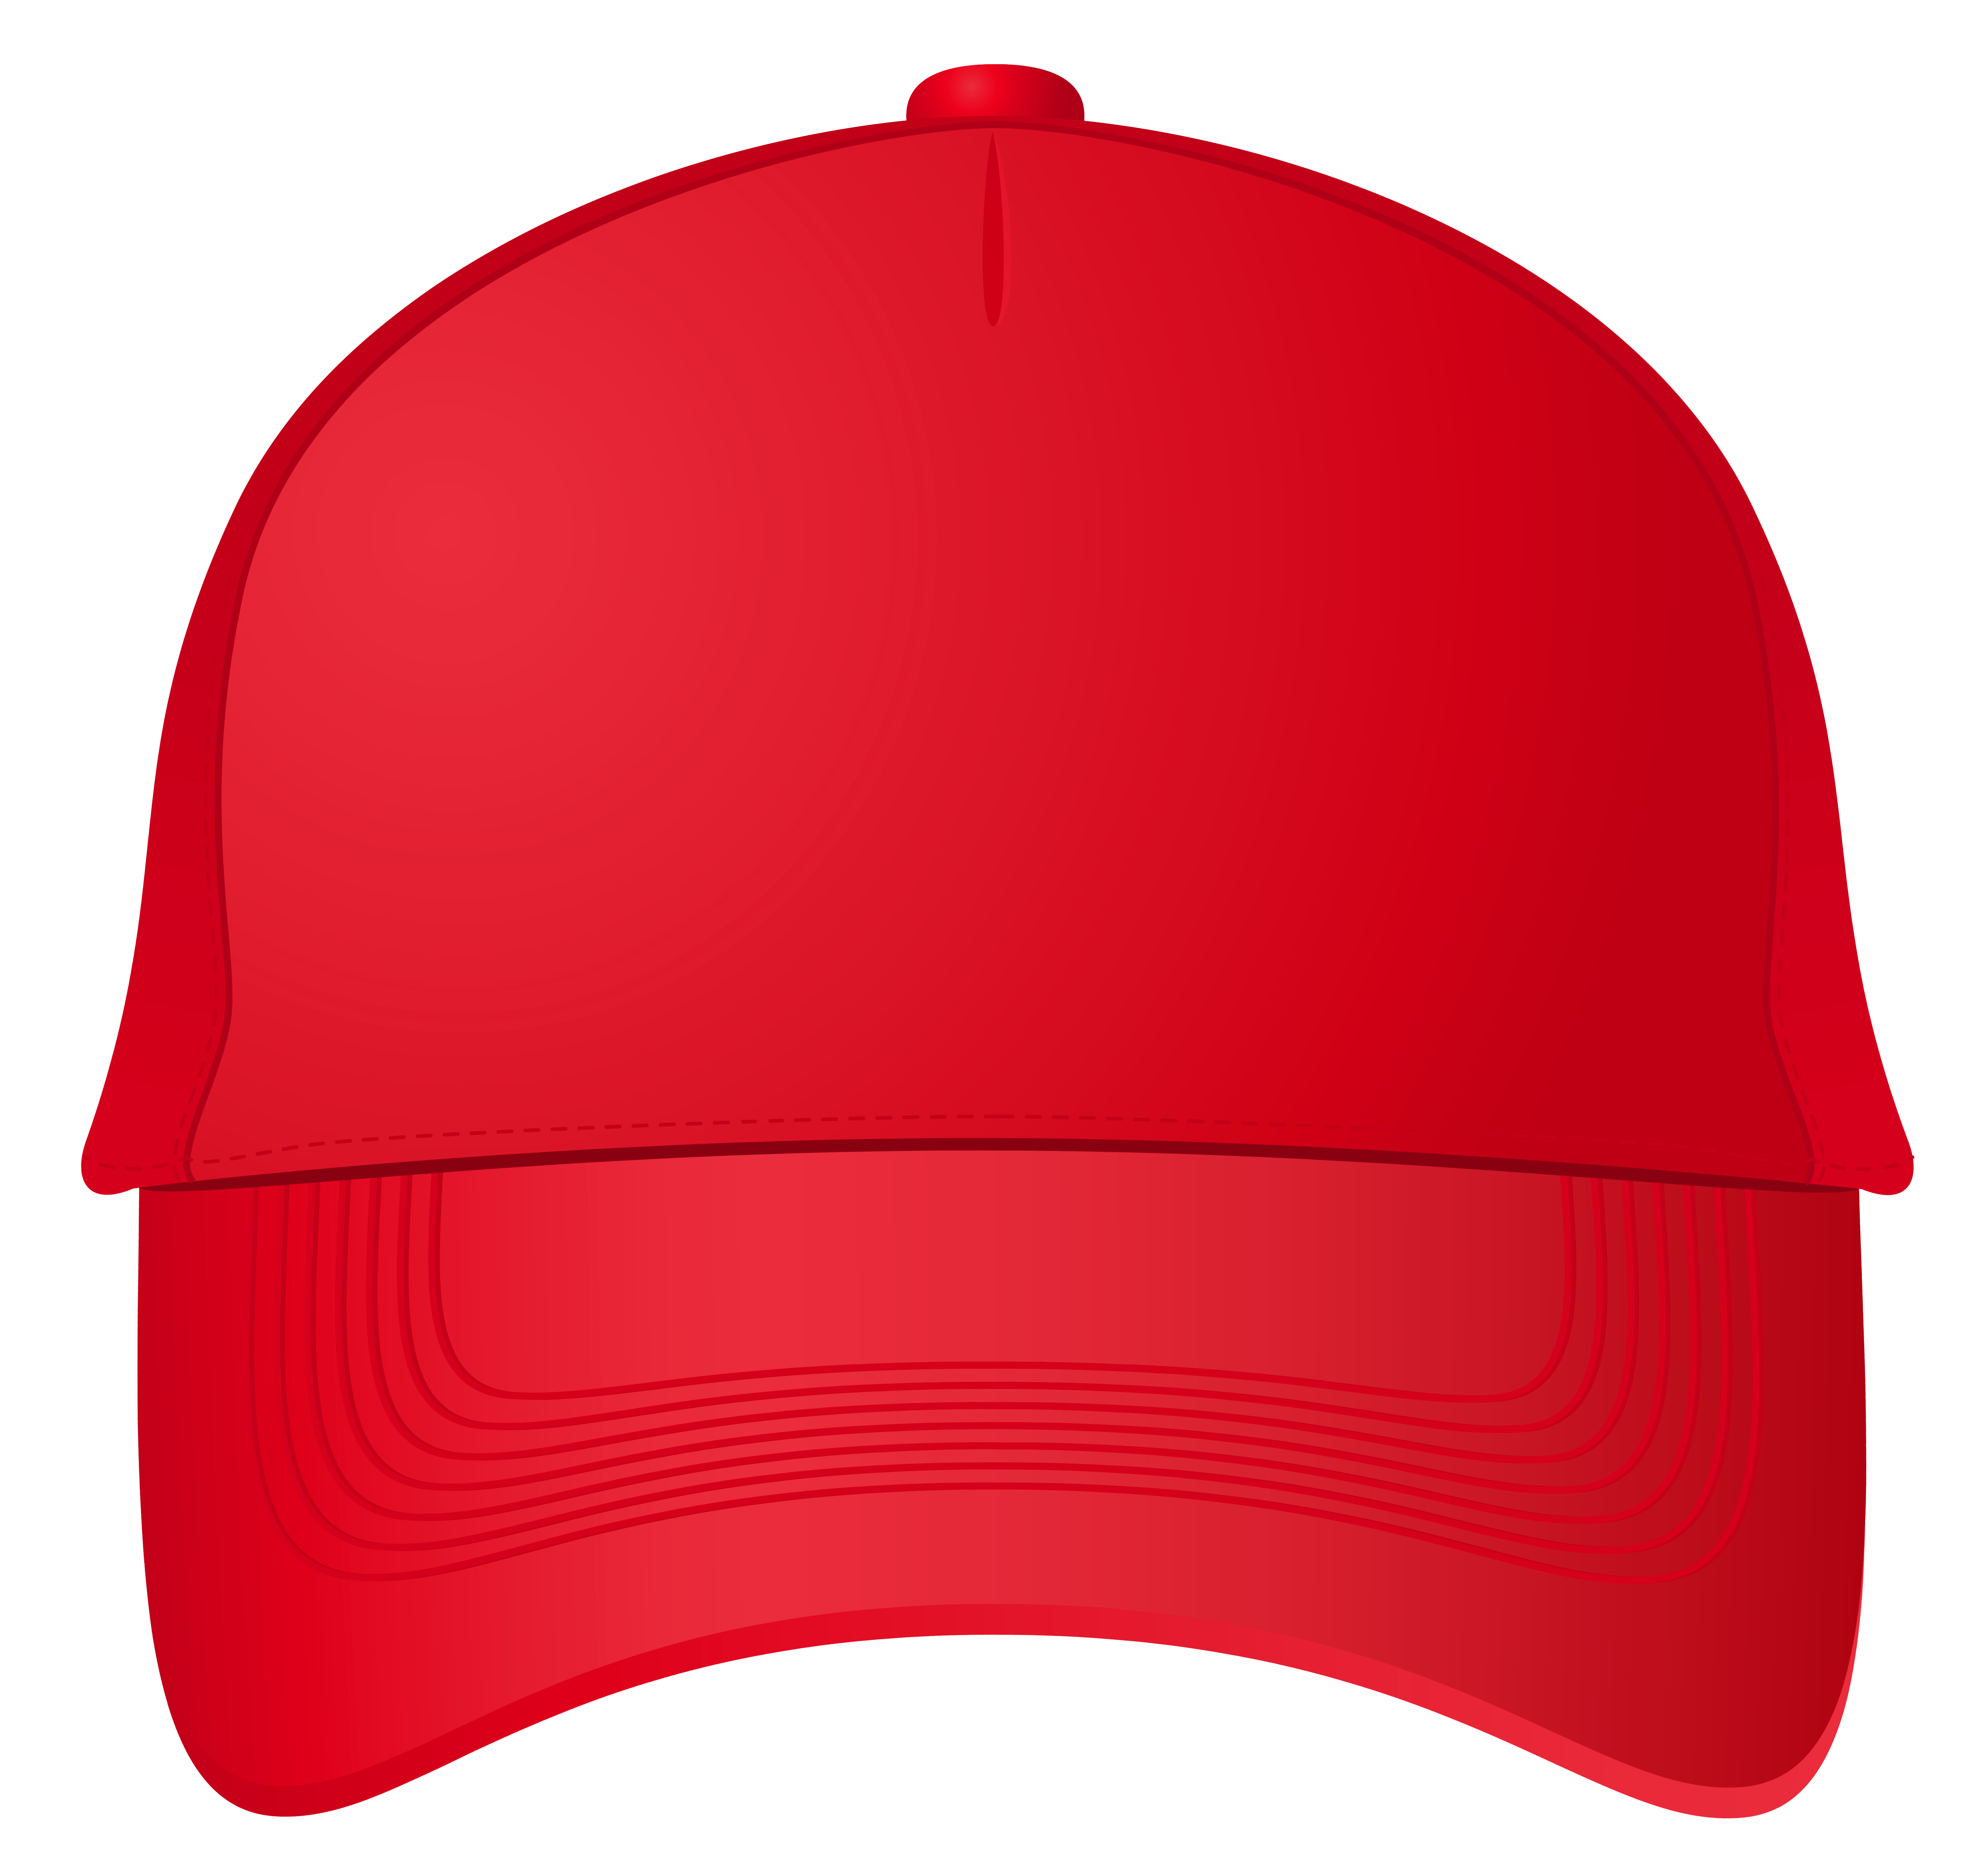 clip art royalty free library Red Baseball Cap PNG Clipart